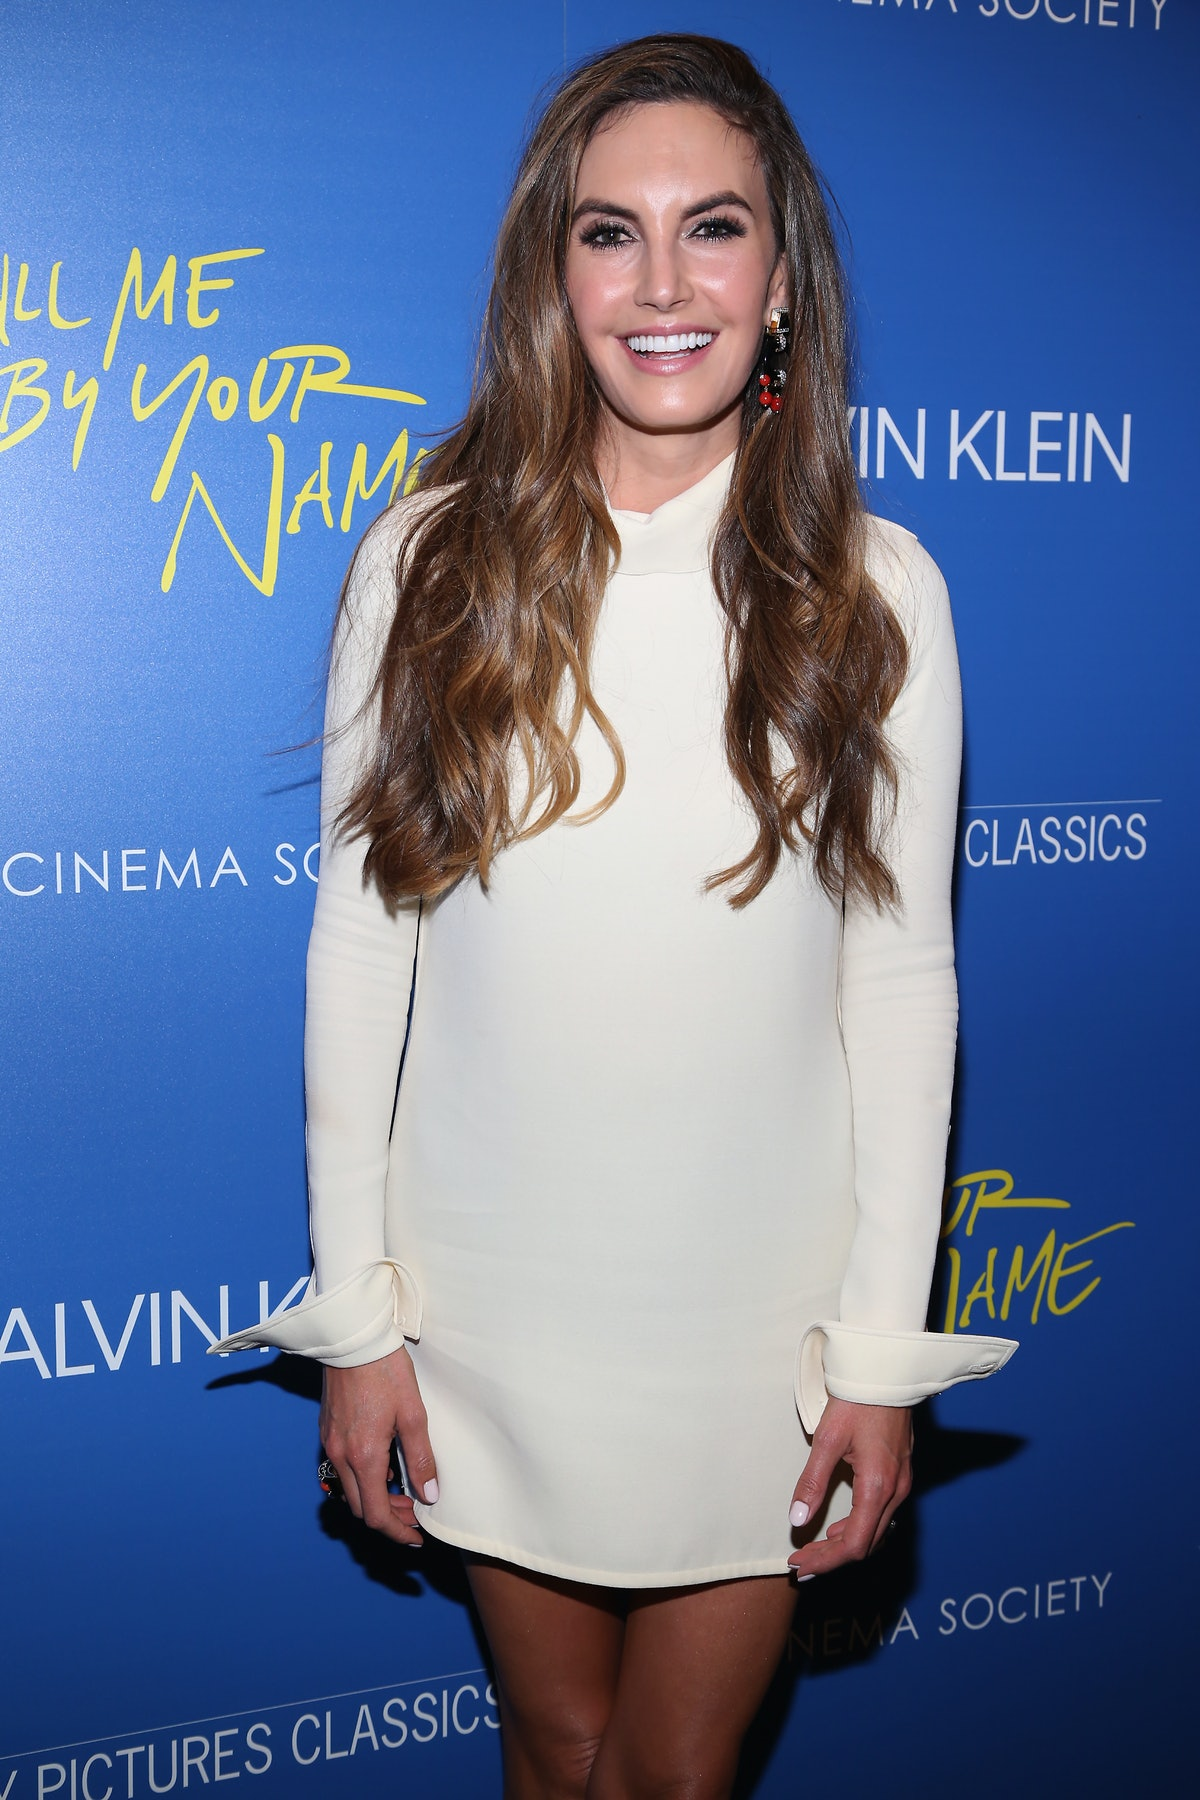 """Calvin Klein and The Cinema Society host a screening of Sony Pictures Classics' """"Call Me By Your Name"""""""